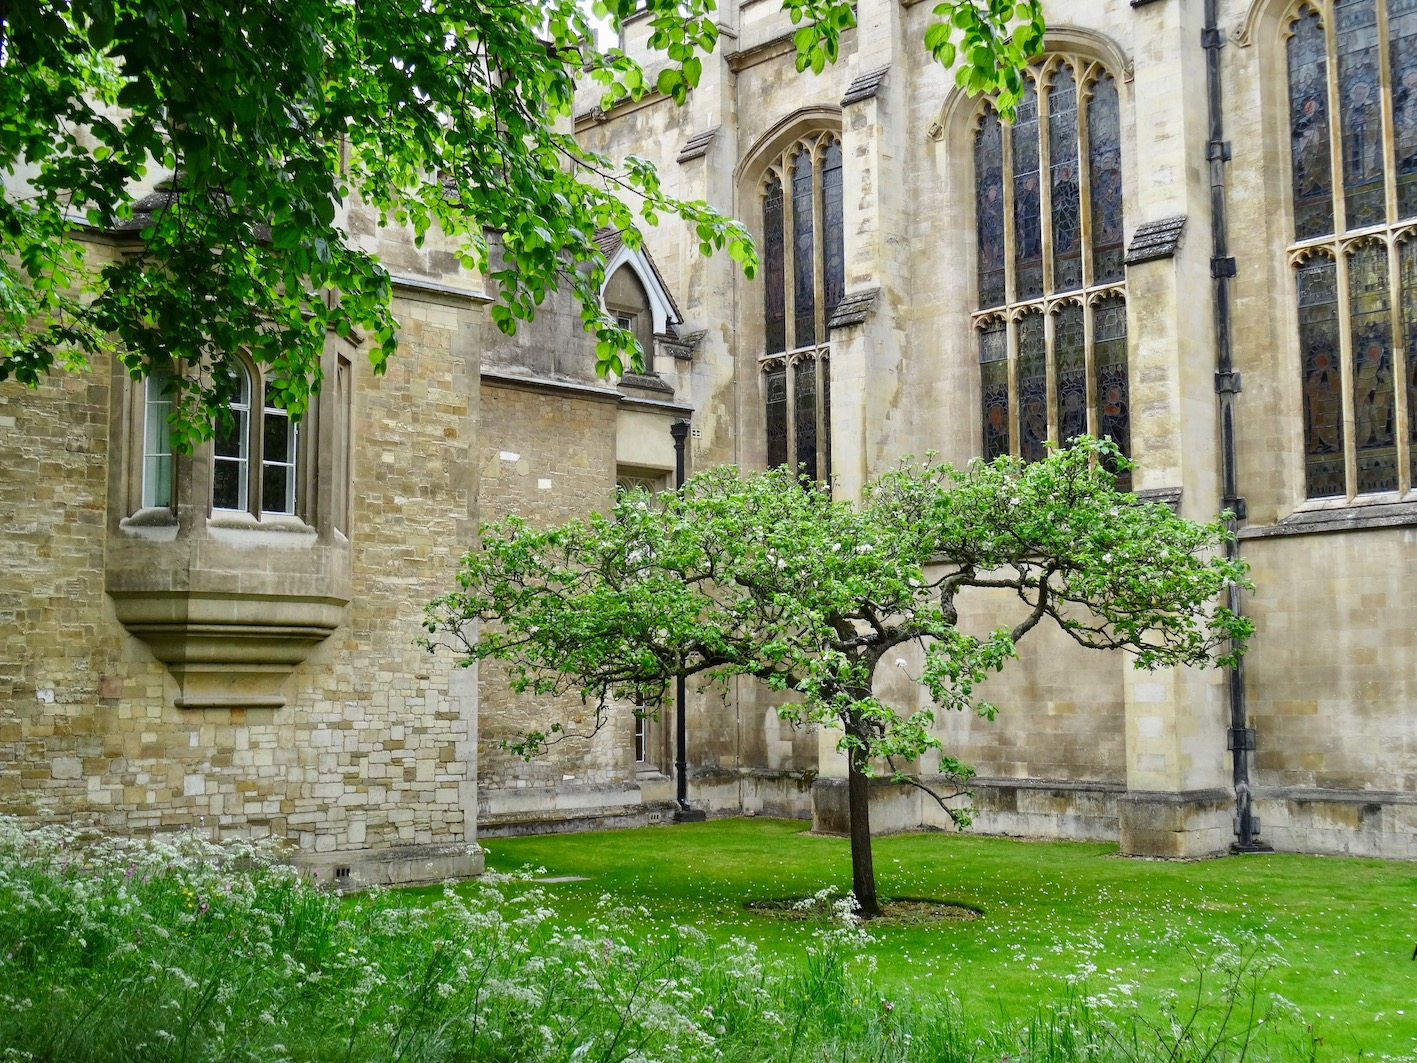 Isaac Newton's Apple Tree Trinity College Cambridge.